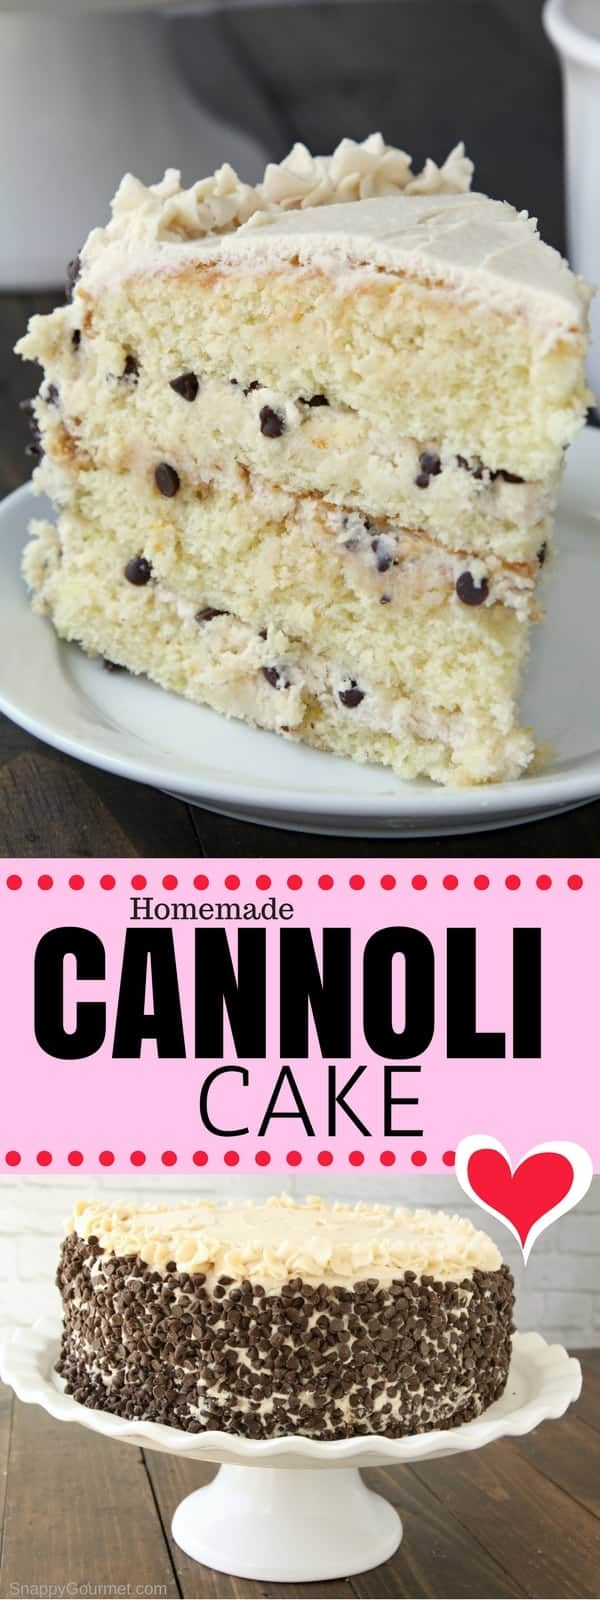 The best Cannoli Cake recipe, an easy from scratch Italian cake with cannoli filling. This layered homemade cannoli cake is full of easy to find ingredients including ricotta, mascarpone, orange zest, and mini chocolate chips. Find out to make a cannoli cake with different flavors for your personal taste. #Cake #Cannoli #Italian #SnappyGourmet #Dessert #Homemade #FromScratch #Easy #Frosting #Cheese